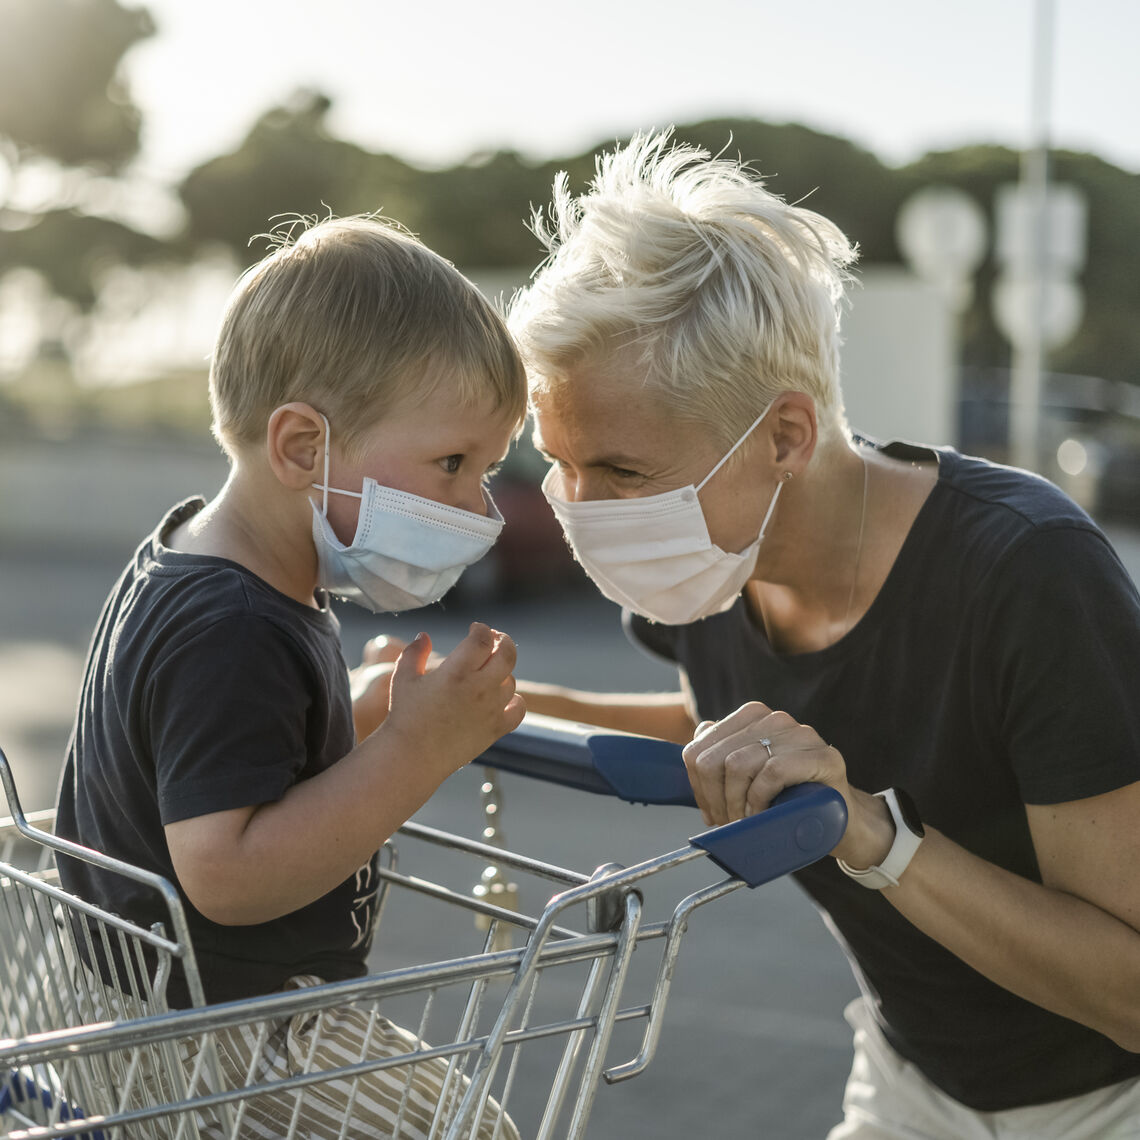 Mother joyfully playing with kid sitting in shopping cart. Both wearing protective face mask before entering a supermarket.